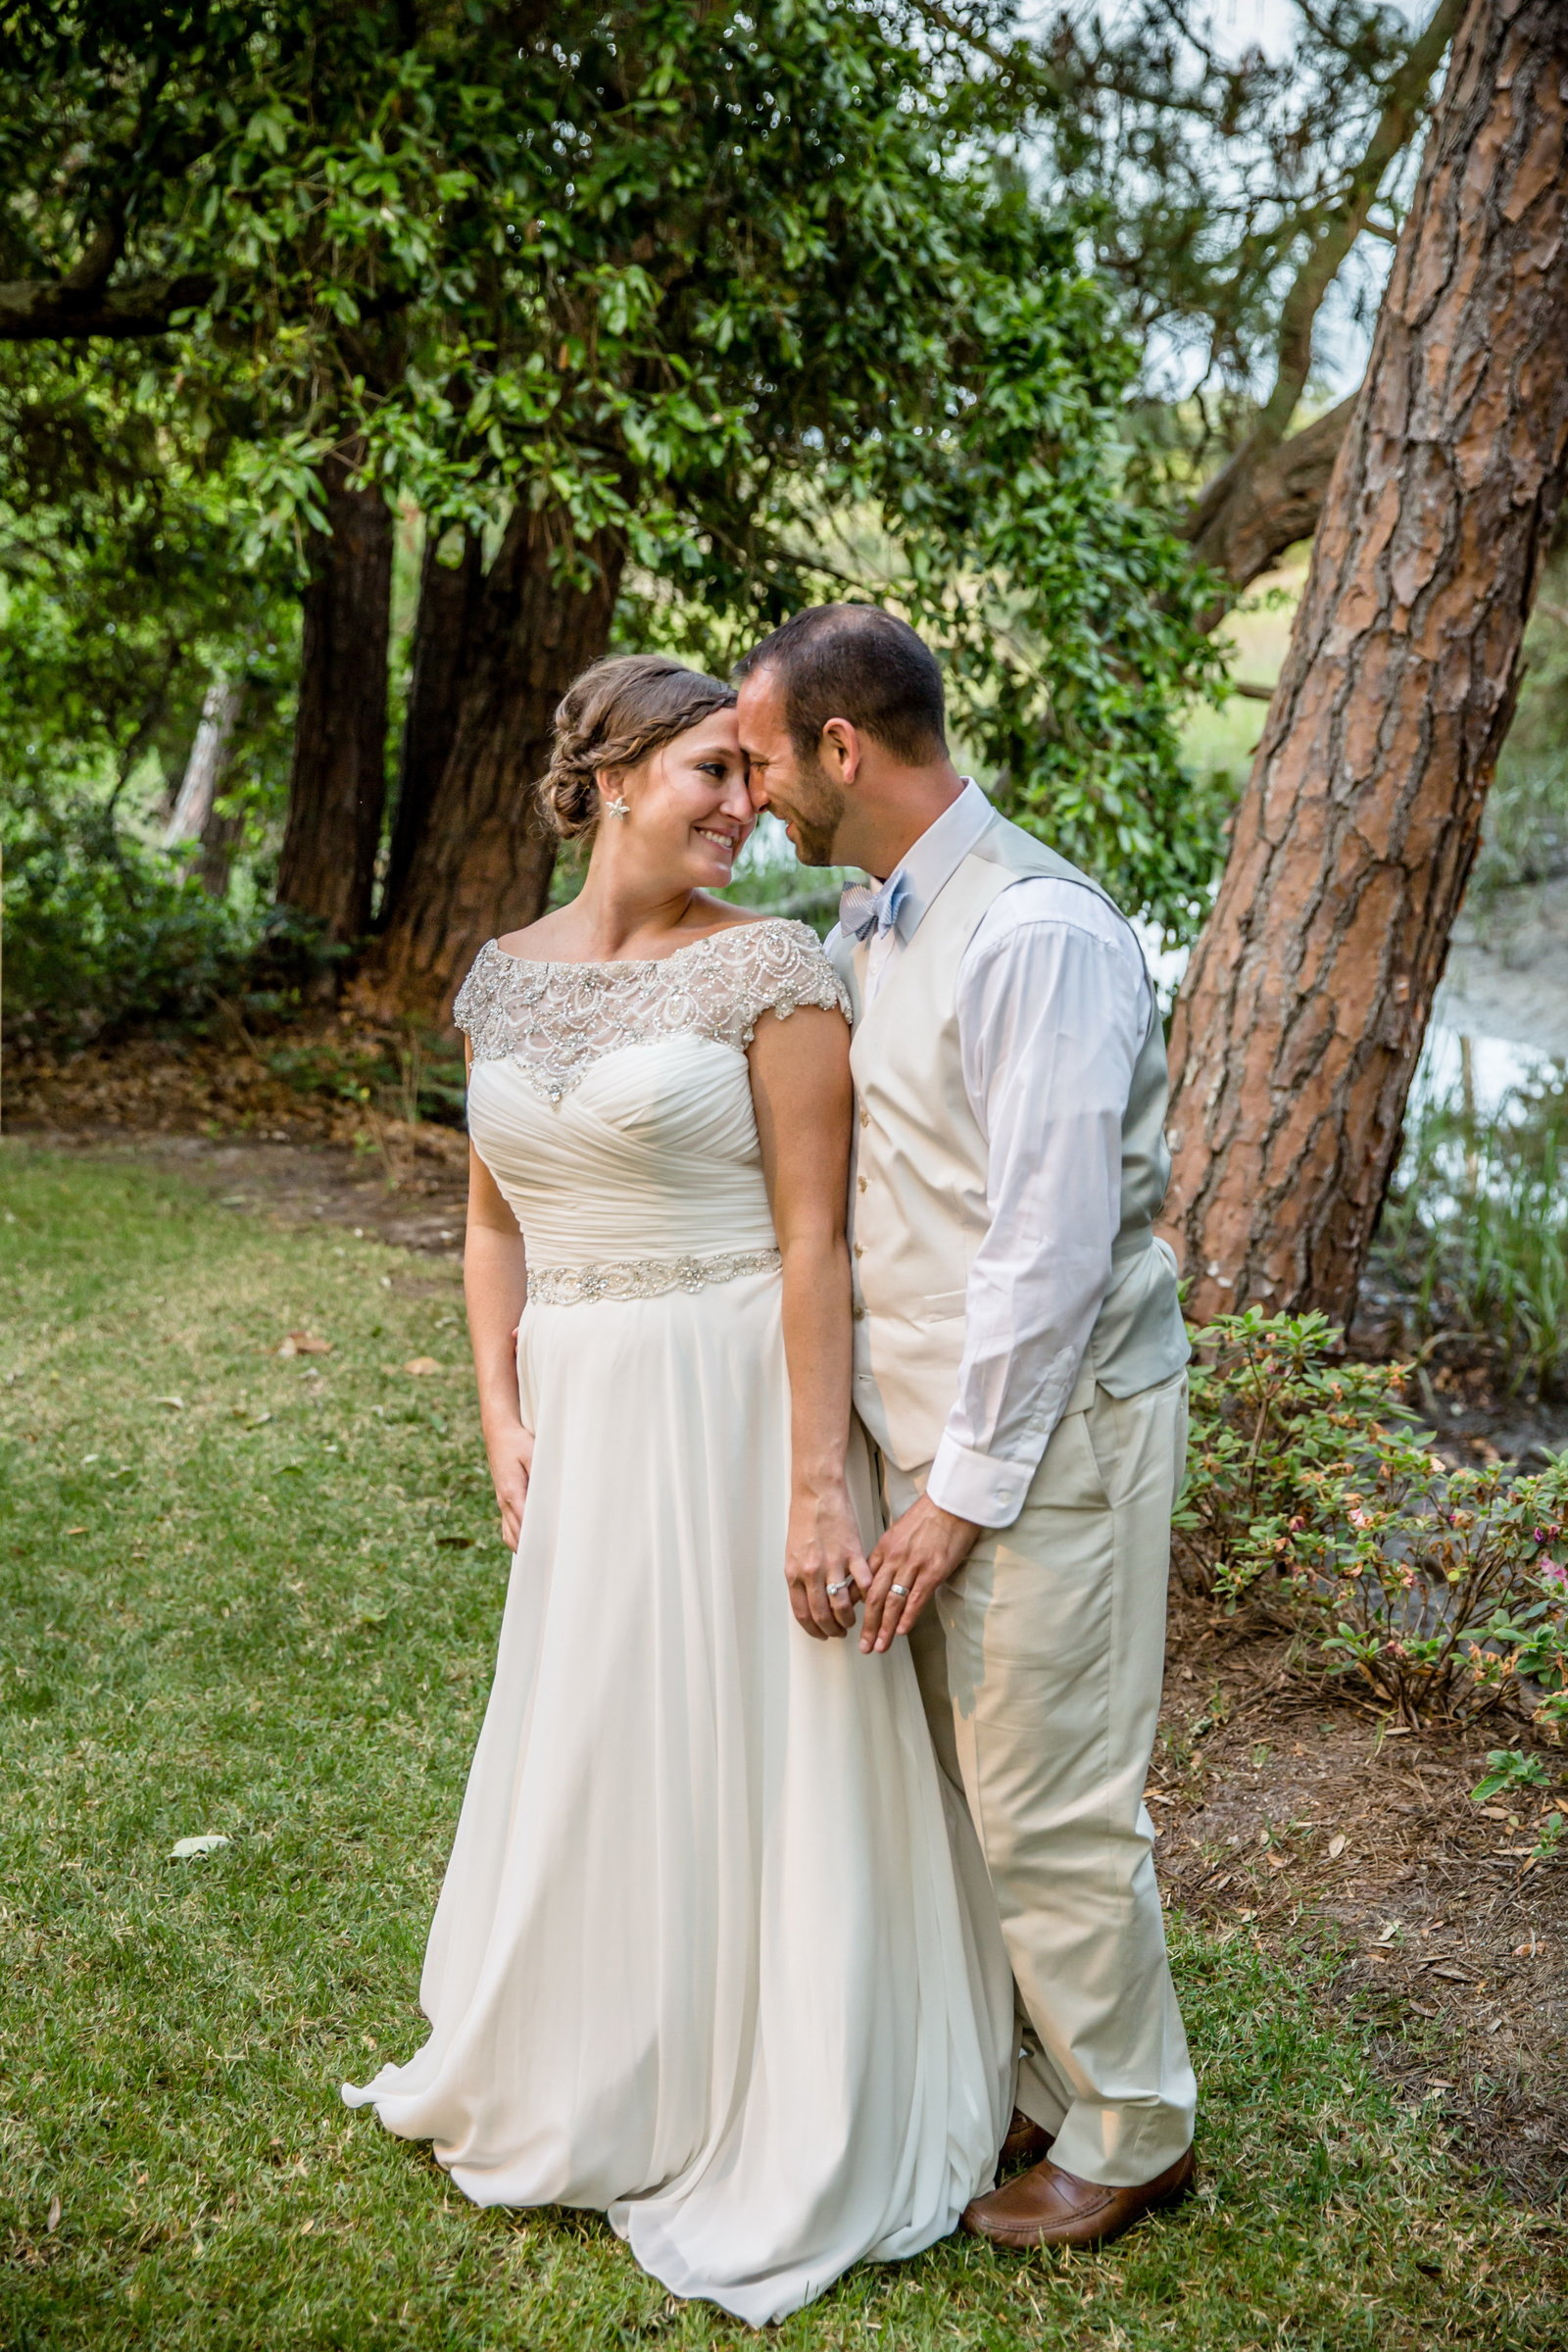 Tybee Island Wedding, Bobbi Brinkman Photography, Jenn + Tony